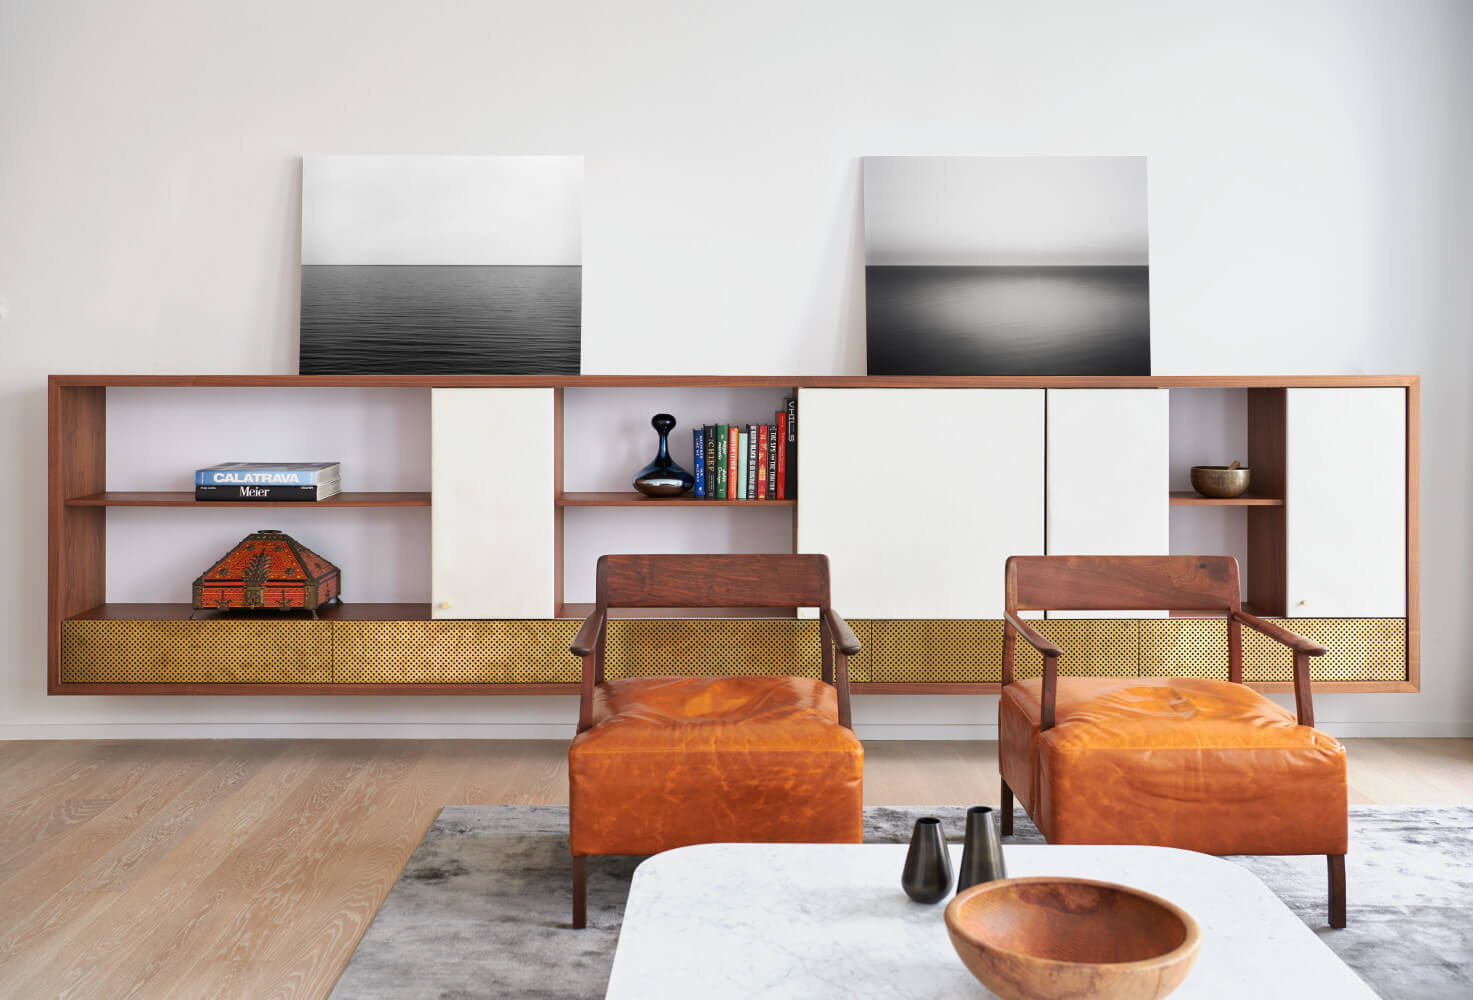 Custom built-in cabinetry made of leather and brass panels hides the TV.